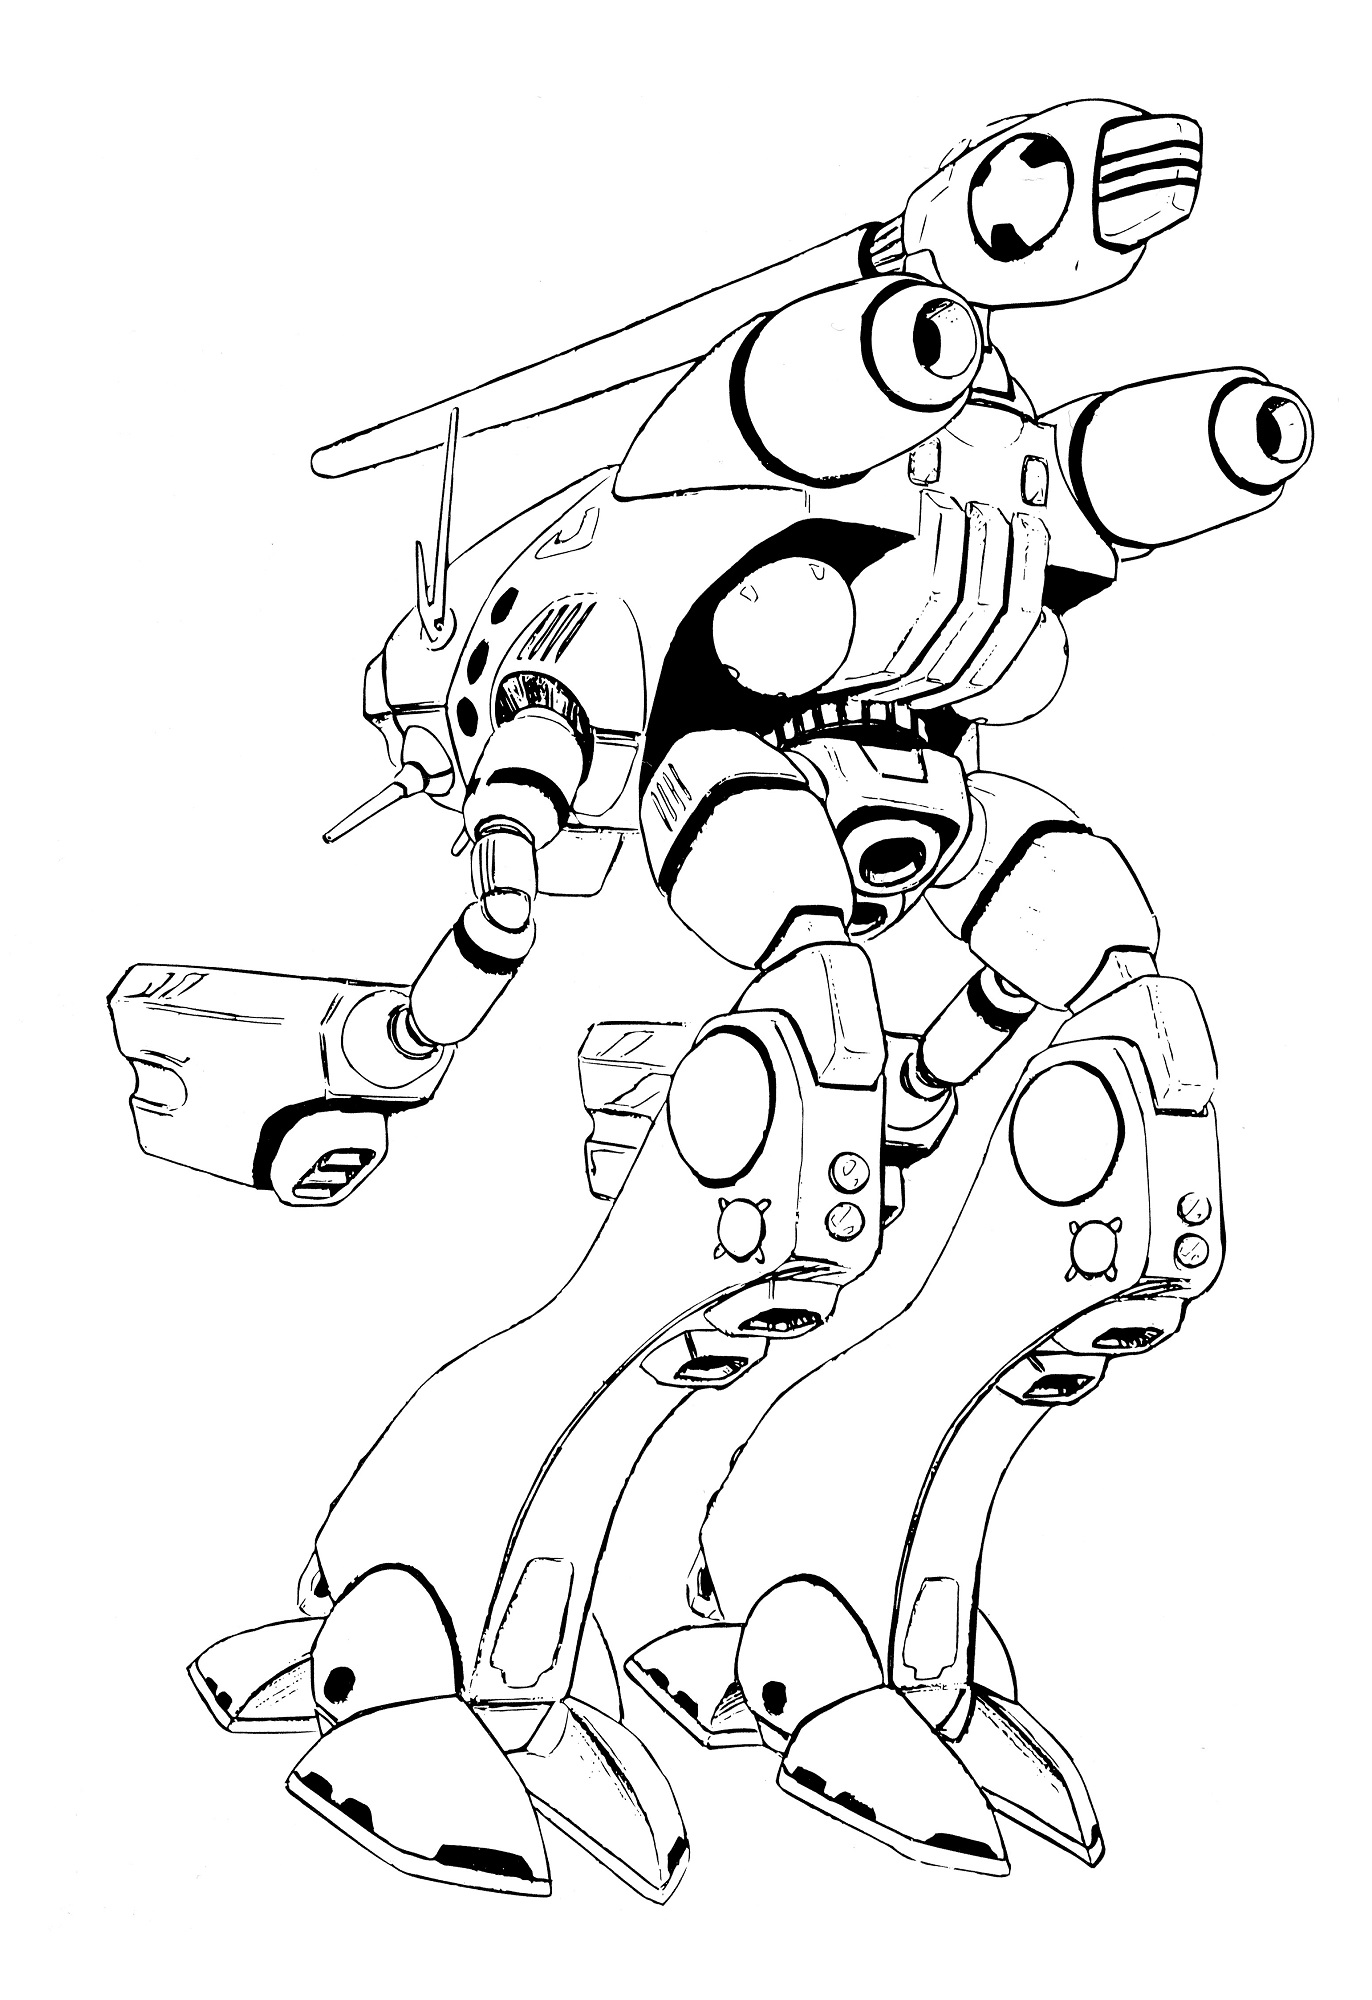 OP-3 Glaug Officer Pod All Environment Combat Robot 12